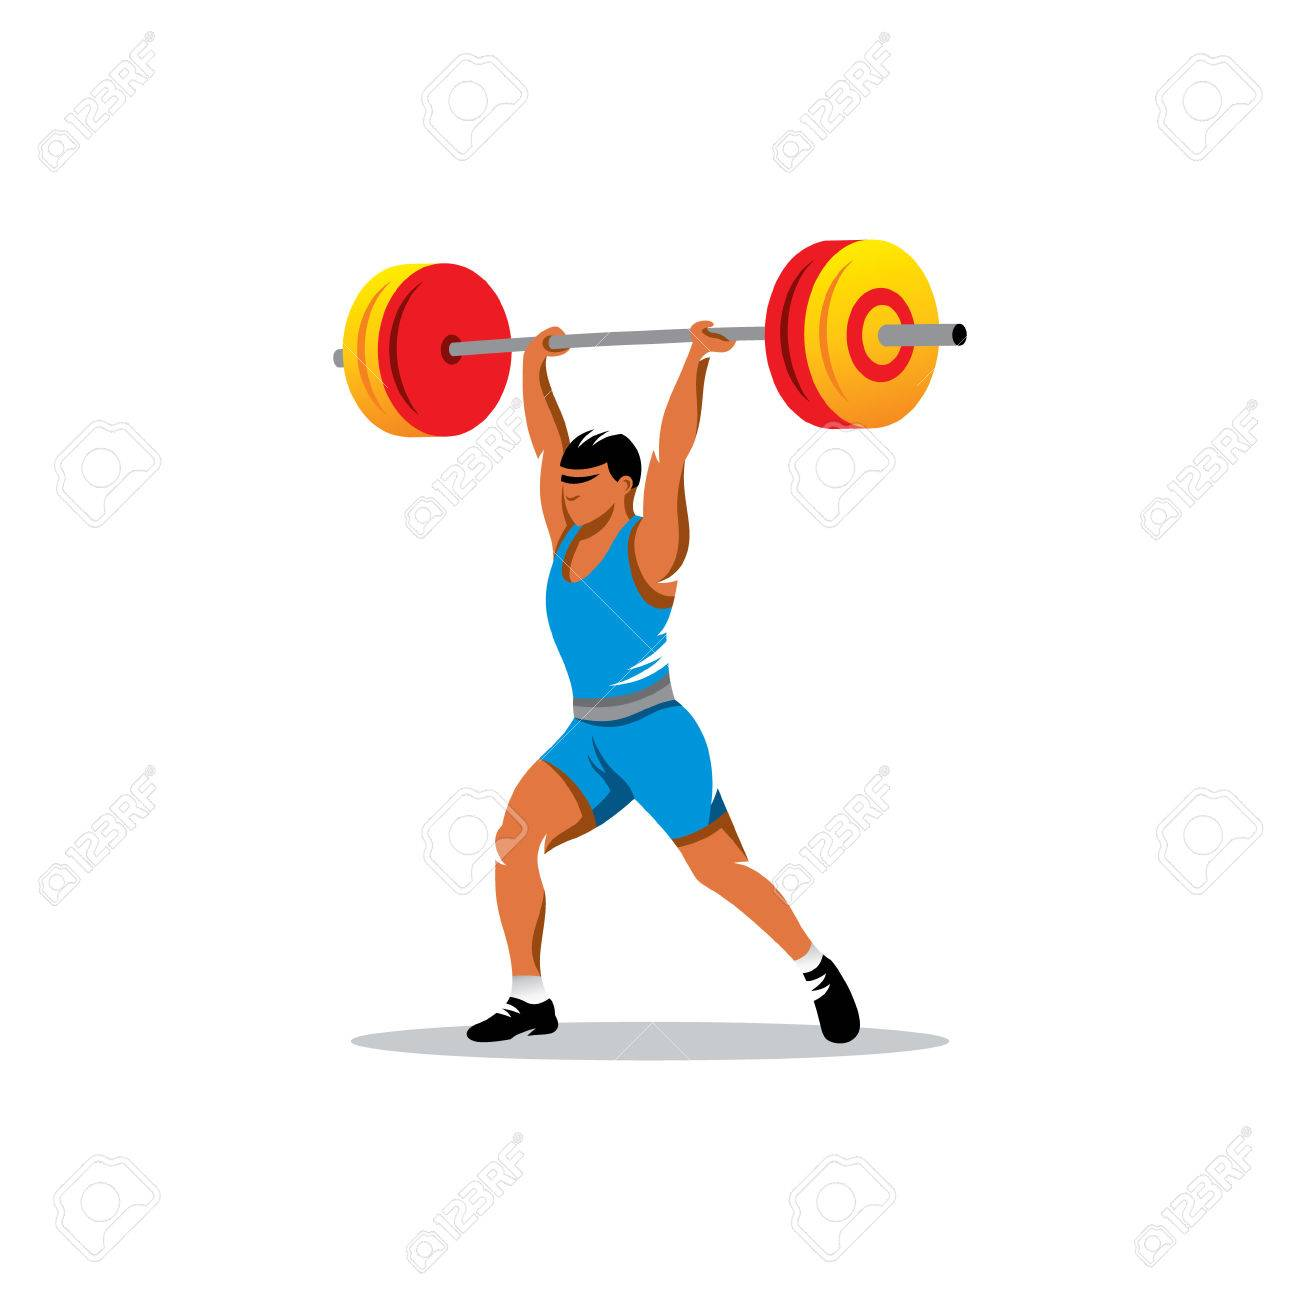 Strong and handsome man lifting weights isolated on white background - 31880651